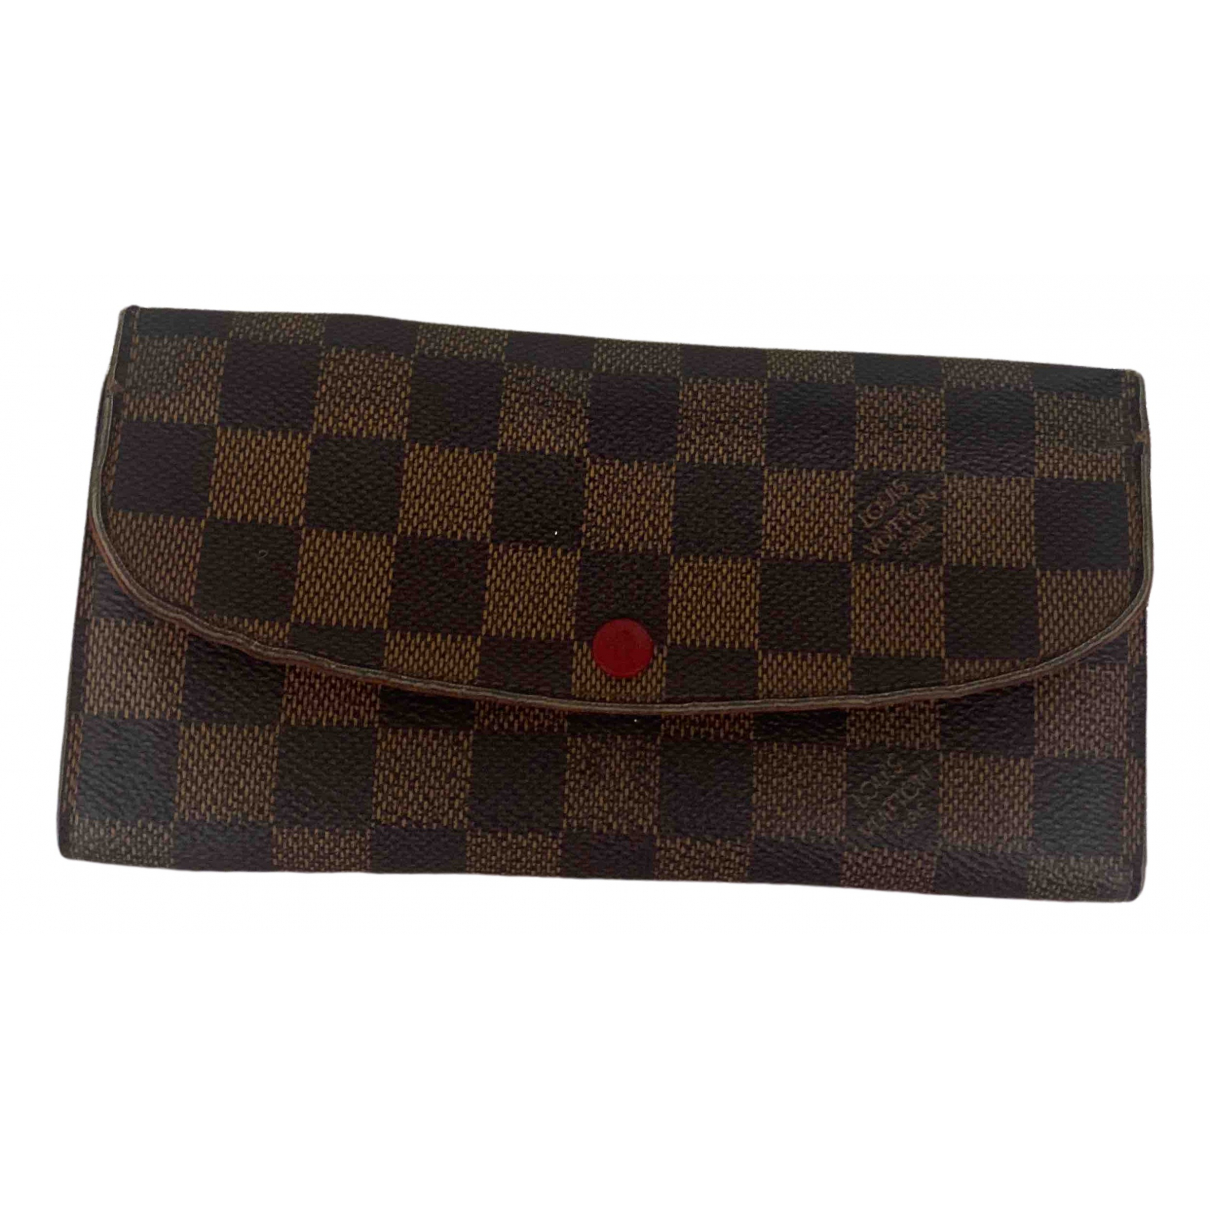 Louis Vuitton Emilie Cloth wallet for Women \N